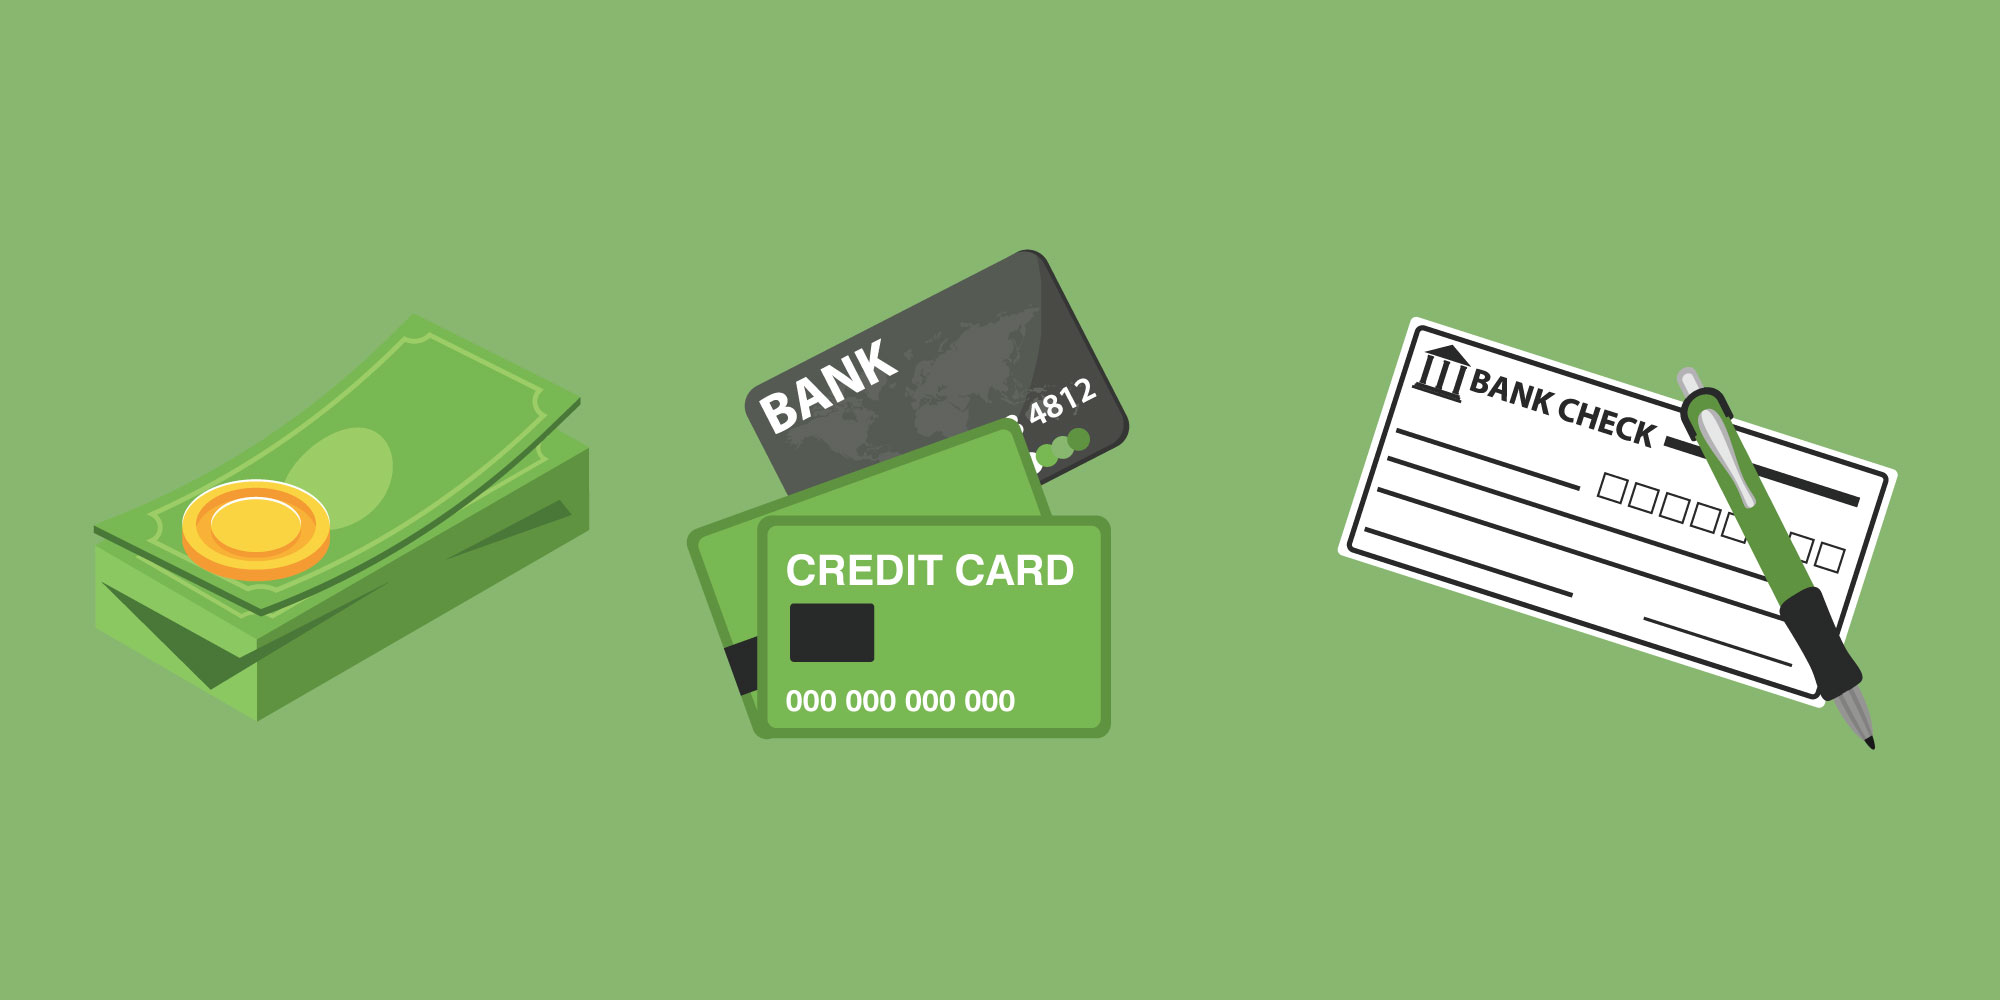 How the End of Credit Card Signatures Impacts Small Businesses - Due